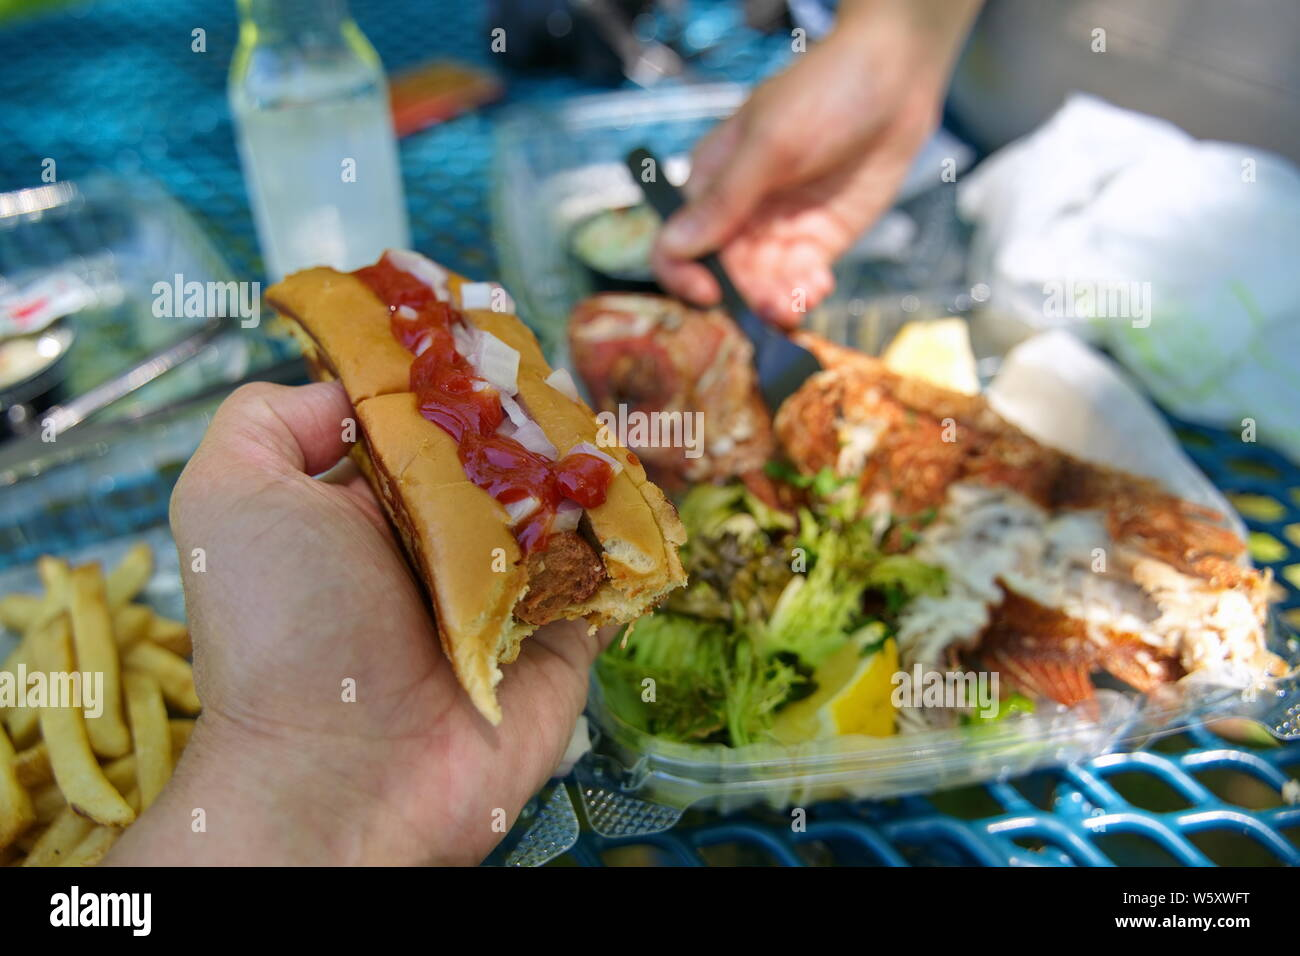 Hand holding a bitten juicy hotdog with fries beside a fried red snapper on a nice outdoors day. Stock Photo